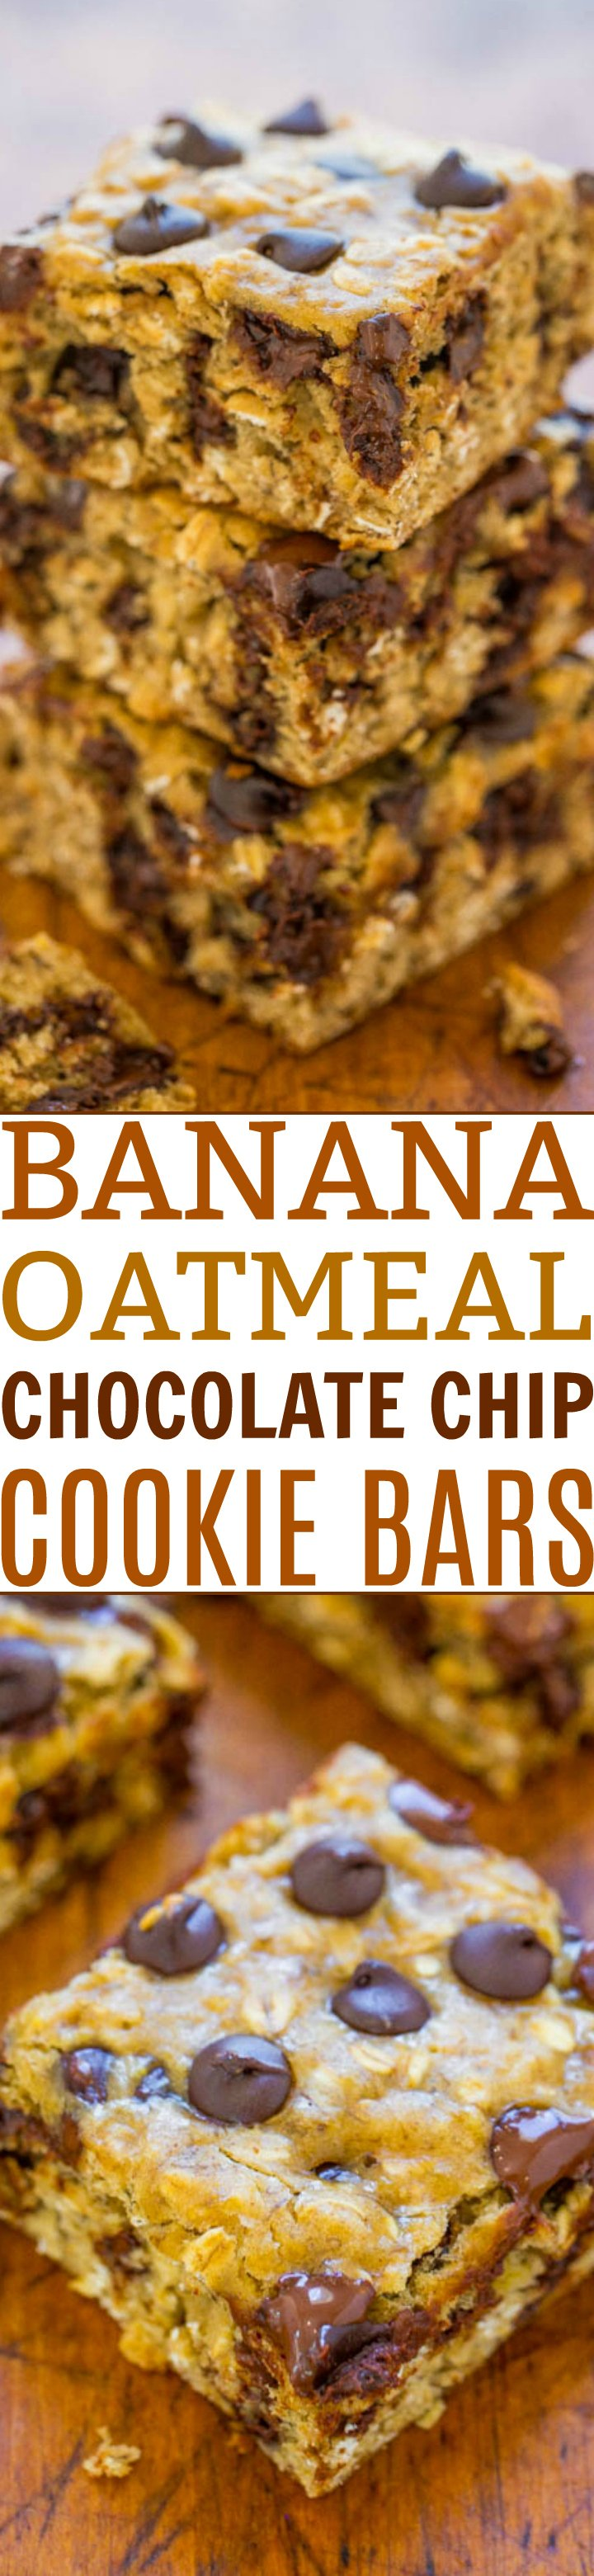 Banana Oatmeal Chocolate Chip Cookie Bars - A FAST and EASY dessert that is on the HEALTHIER side with only 1/4 cup butter and no oil!! Bold banana flavor, chewiness from the oats, and plenty of chocolate in every bite!!